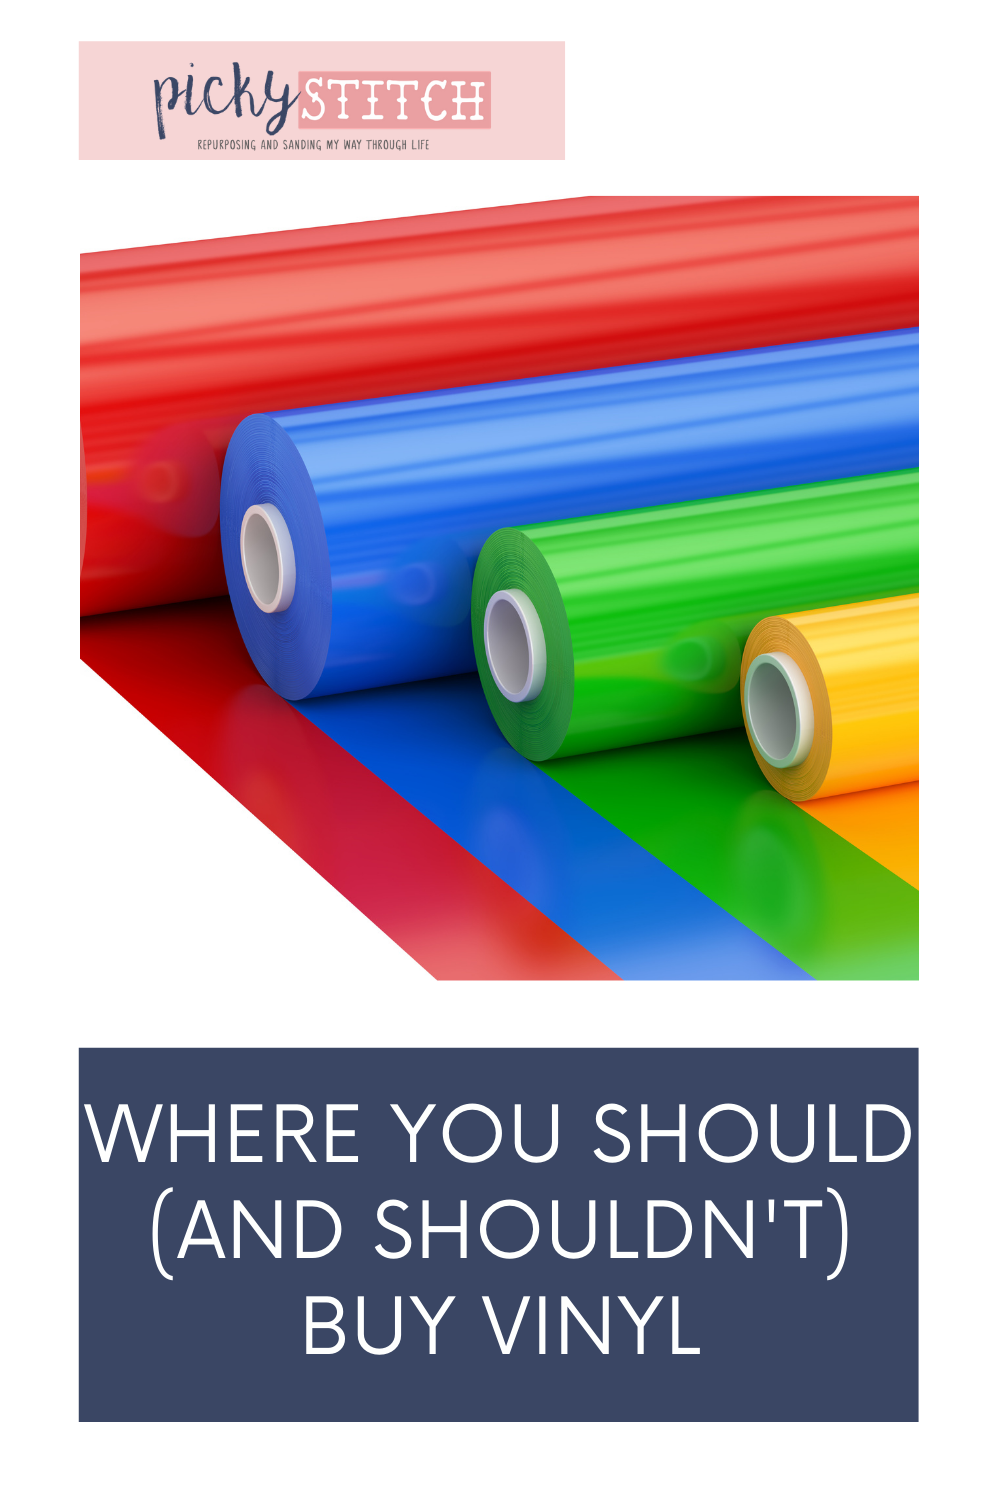 Pickystitch.com has got you covered for all of your DIY and craft needs! Make sure you start every project with the absolute best supplies. Find out where you should be buying your adhesive vinyl from!